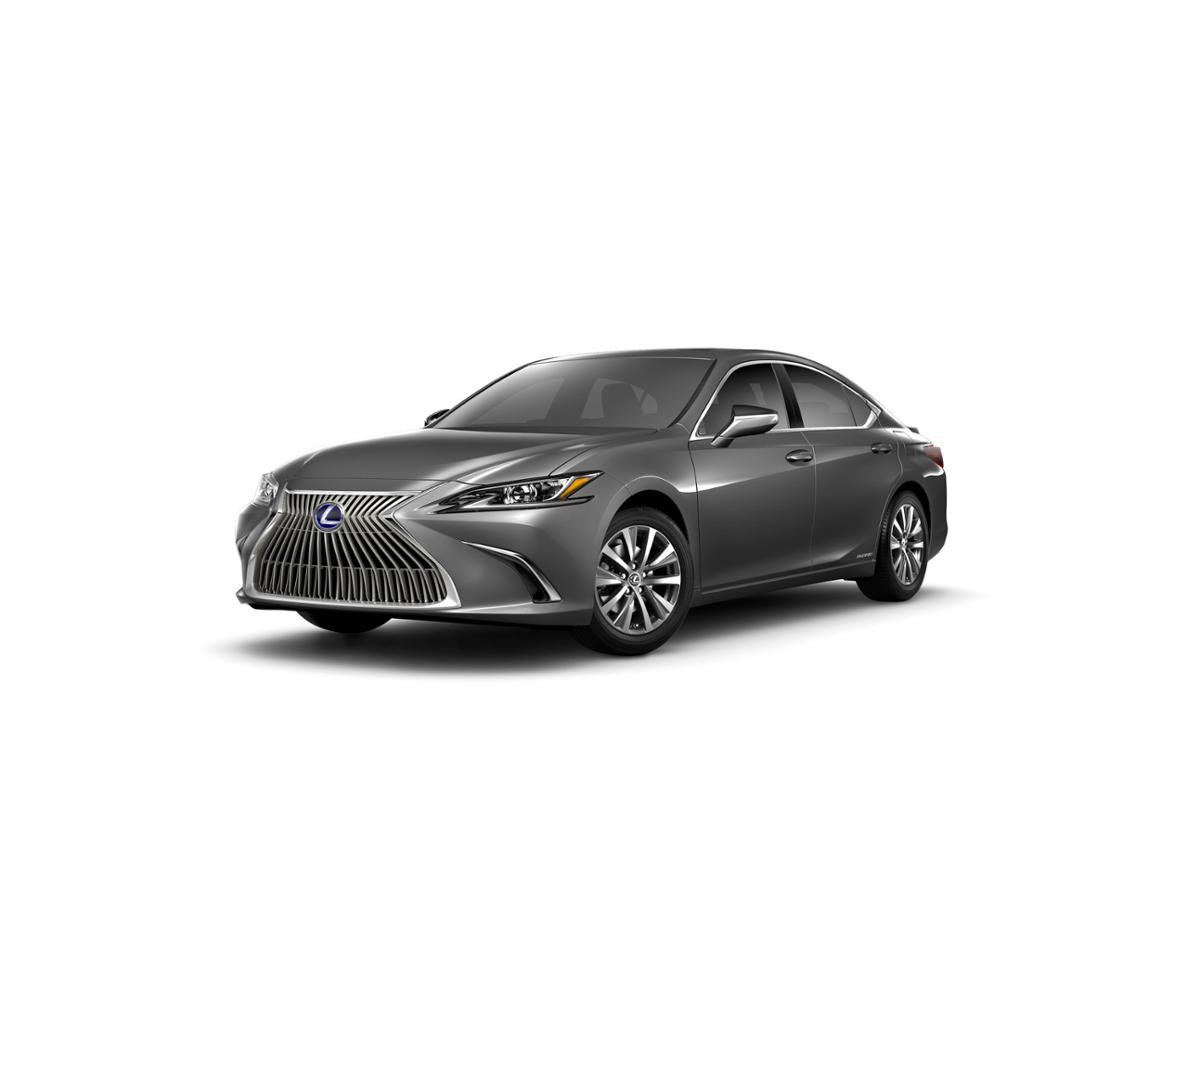 2019 Lexus ES 300h Vehicle Photo in El Monte, CA 91731